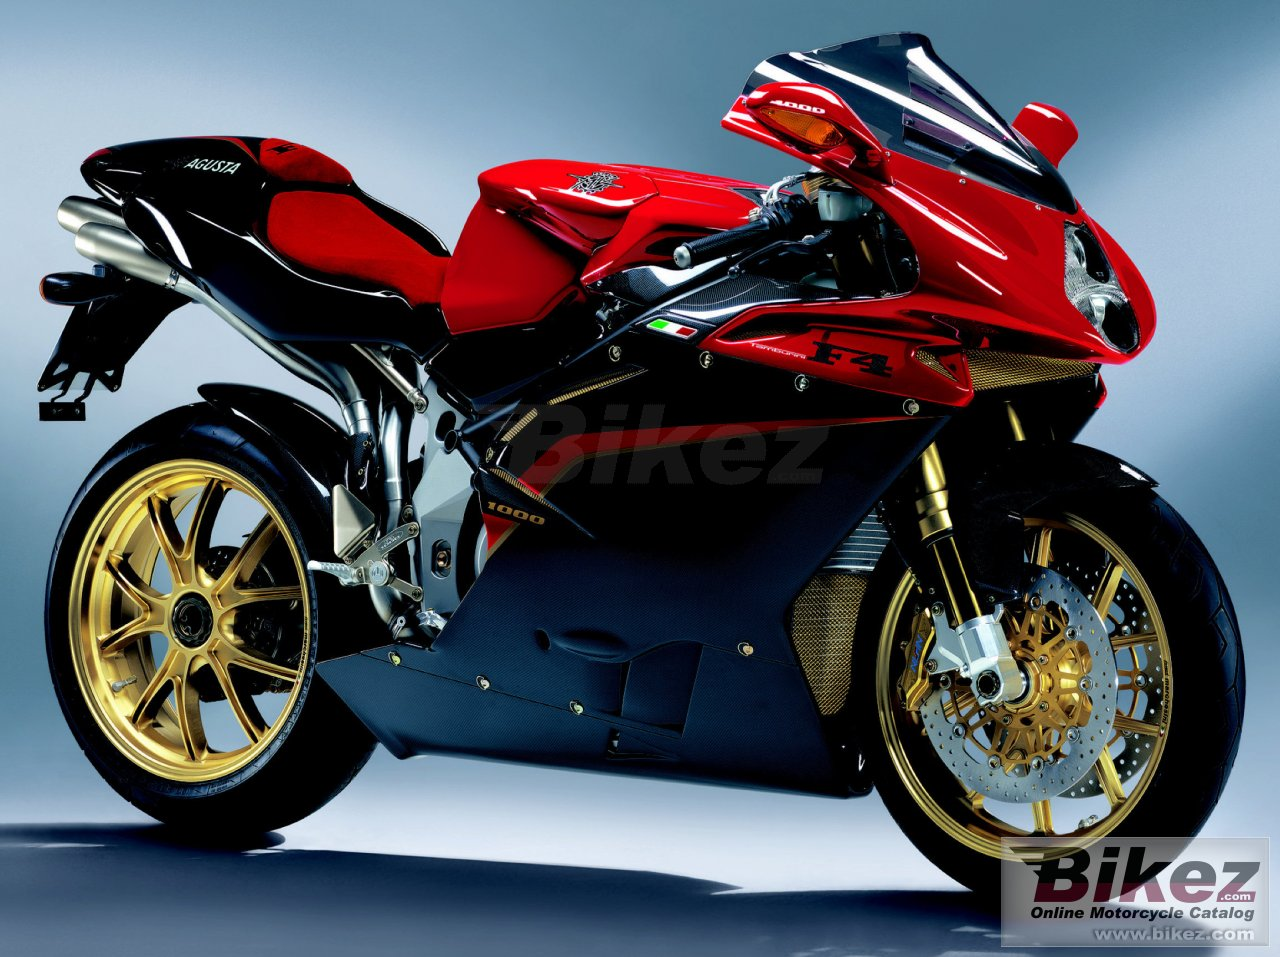 Big MV Agusta f4 tamburini picture and wallpaper from Bikez.com